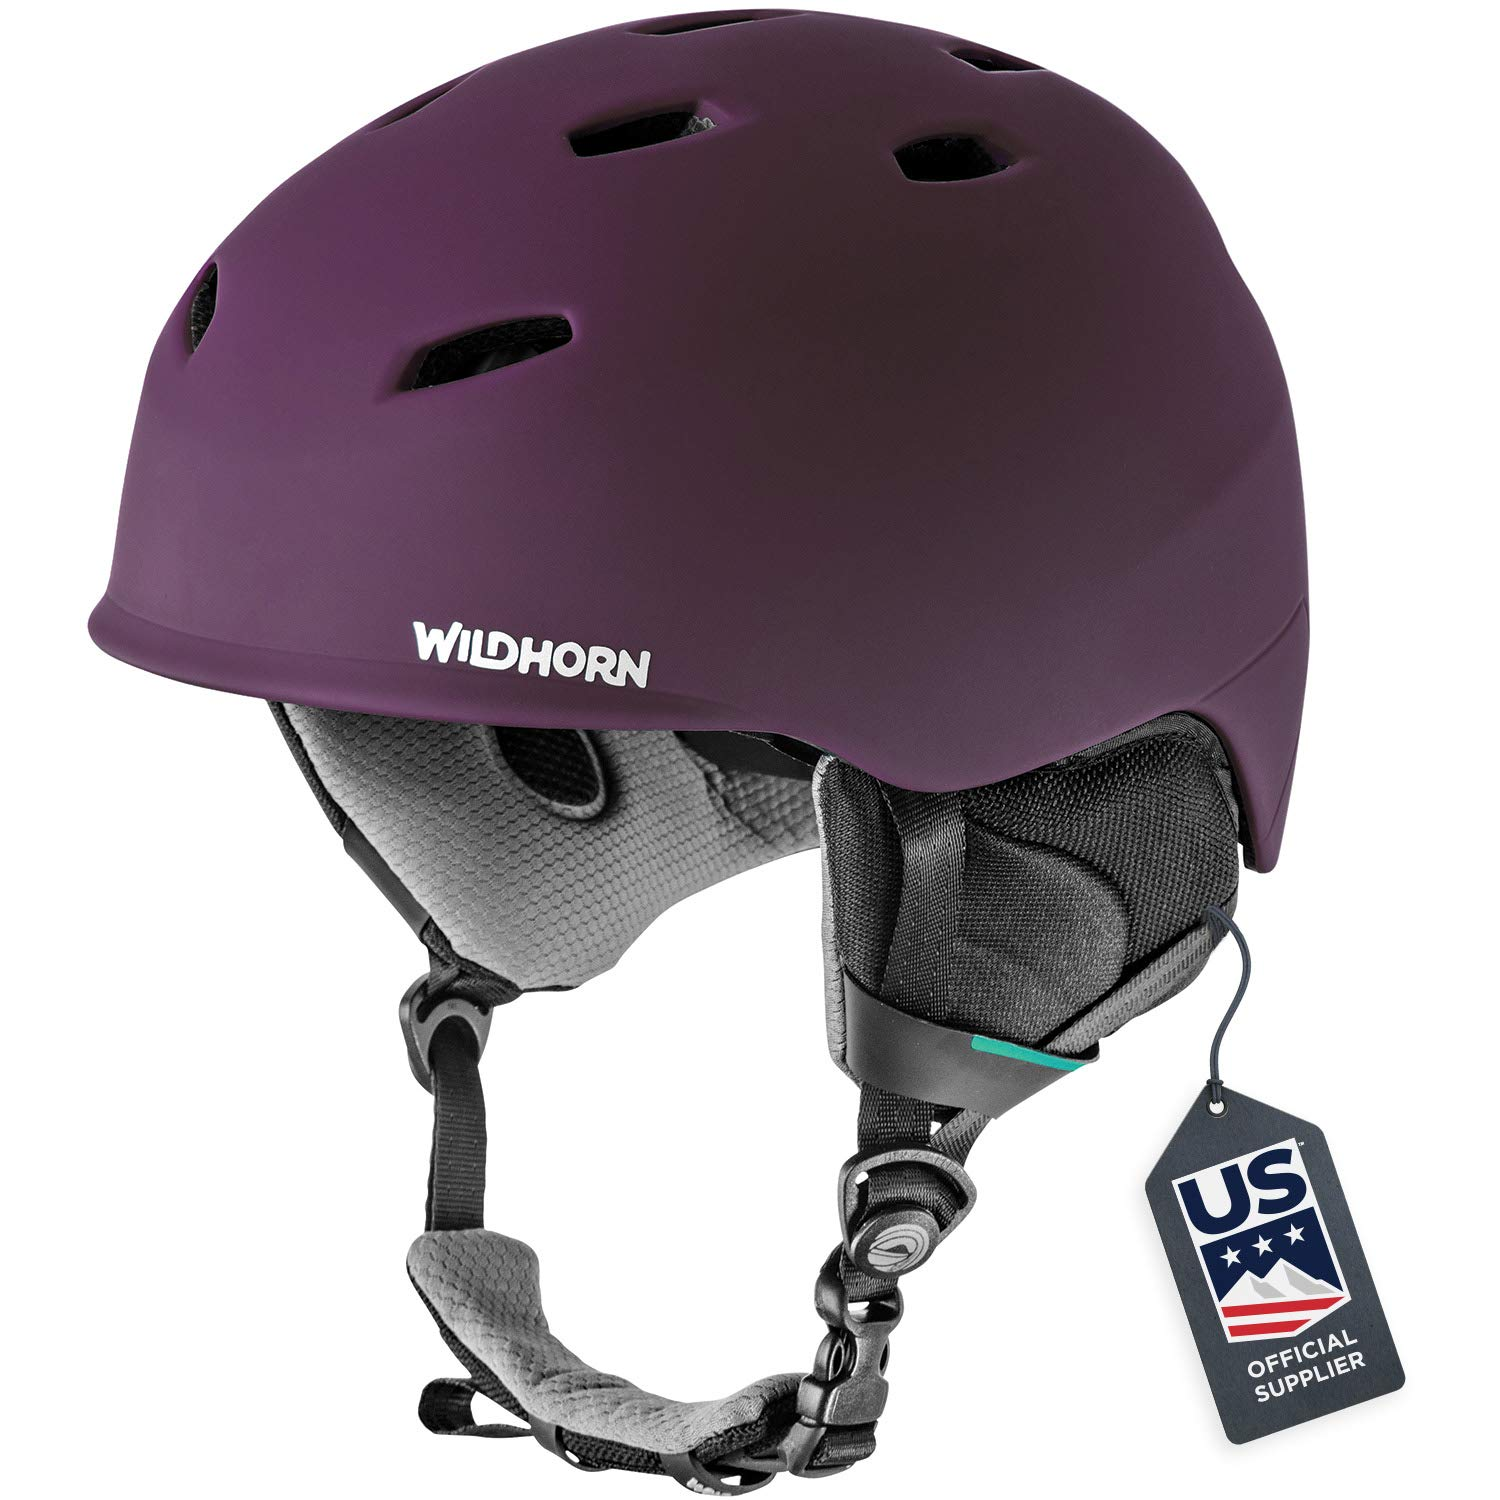 Top 15 Best Ski Helmet for Kids Reviews in 2020 4